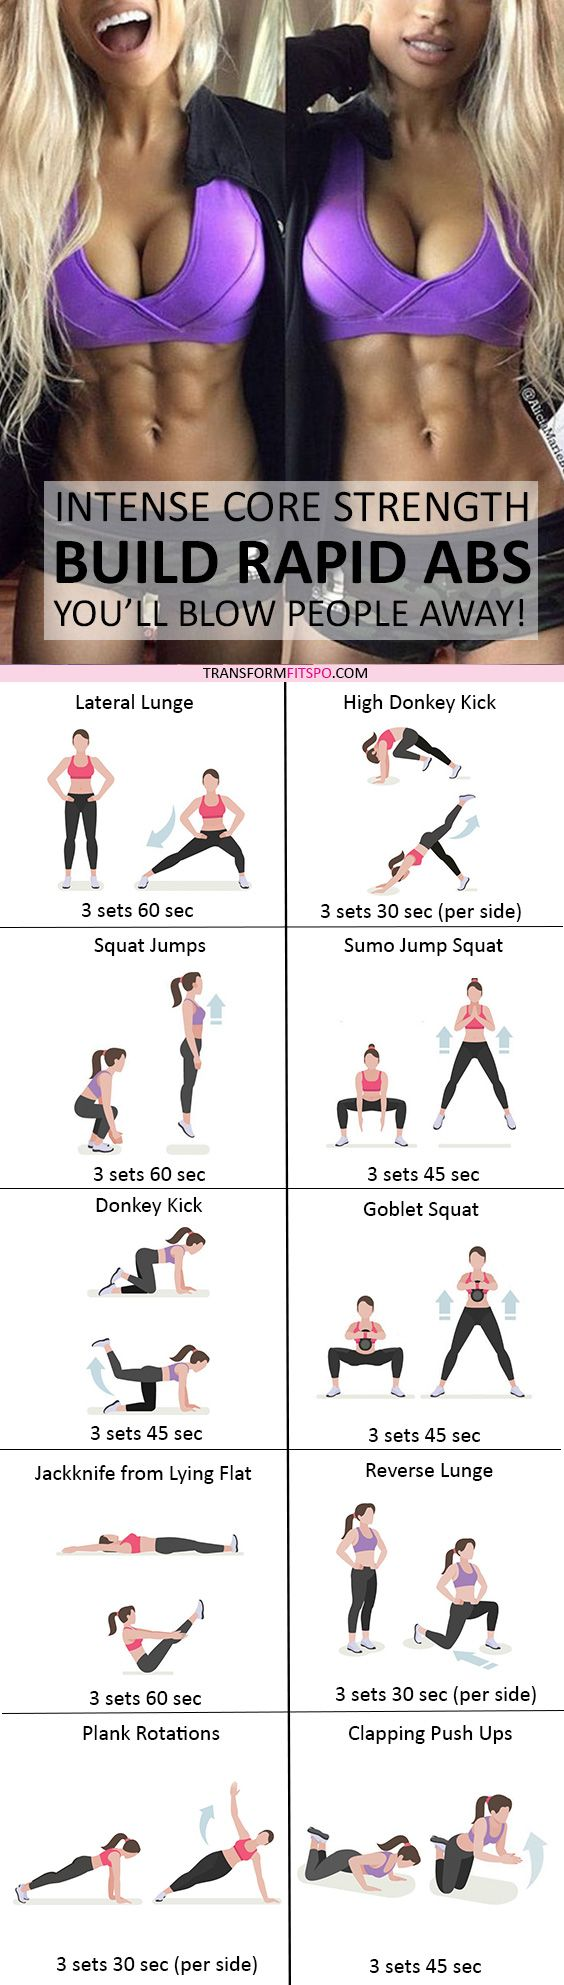 #womensworkout #workout #femalefitness Repin and share if this workout gave you rapid abs! Click the pin for the full workout.